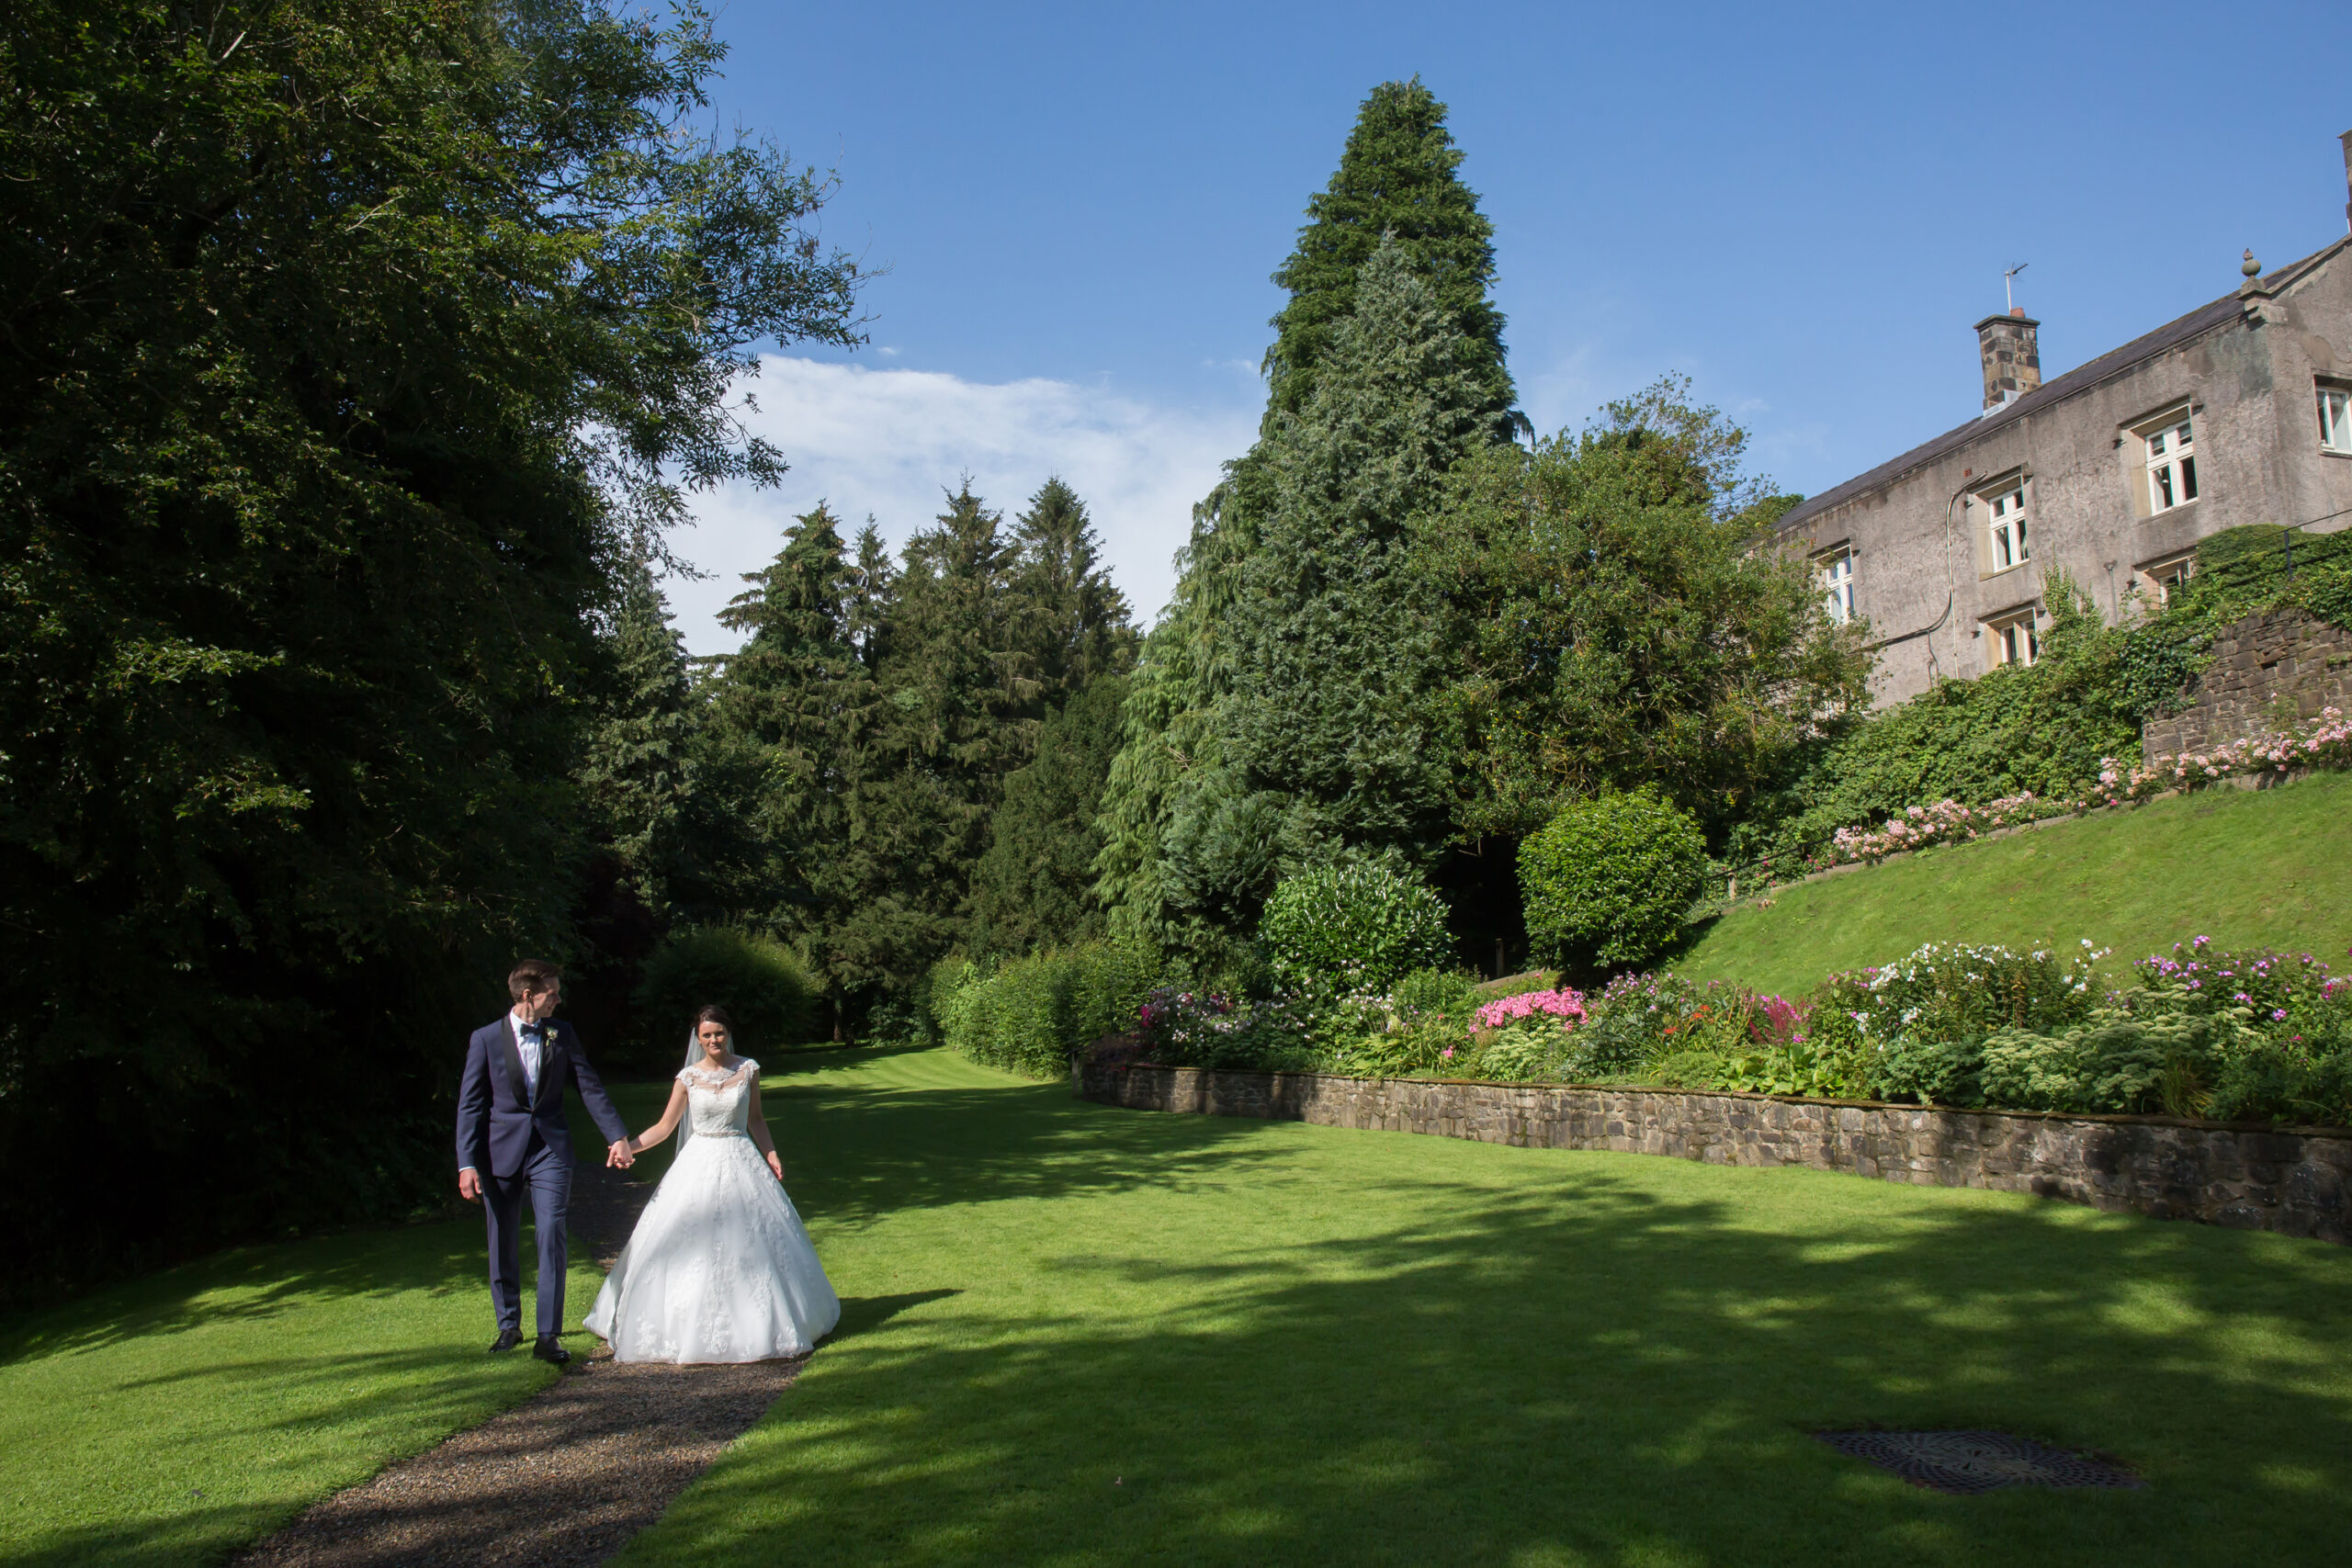 the happy couple go for a walk in the gardens of Mitton Hall